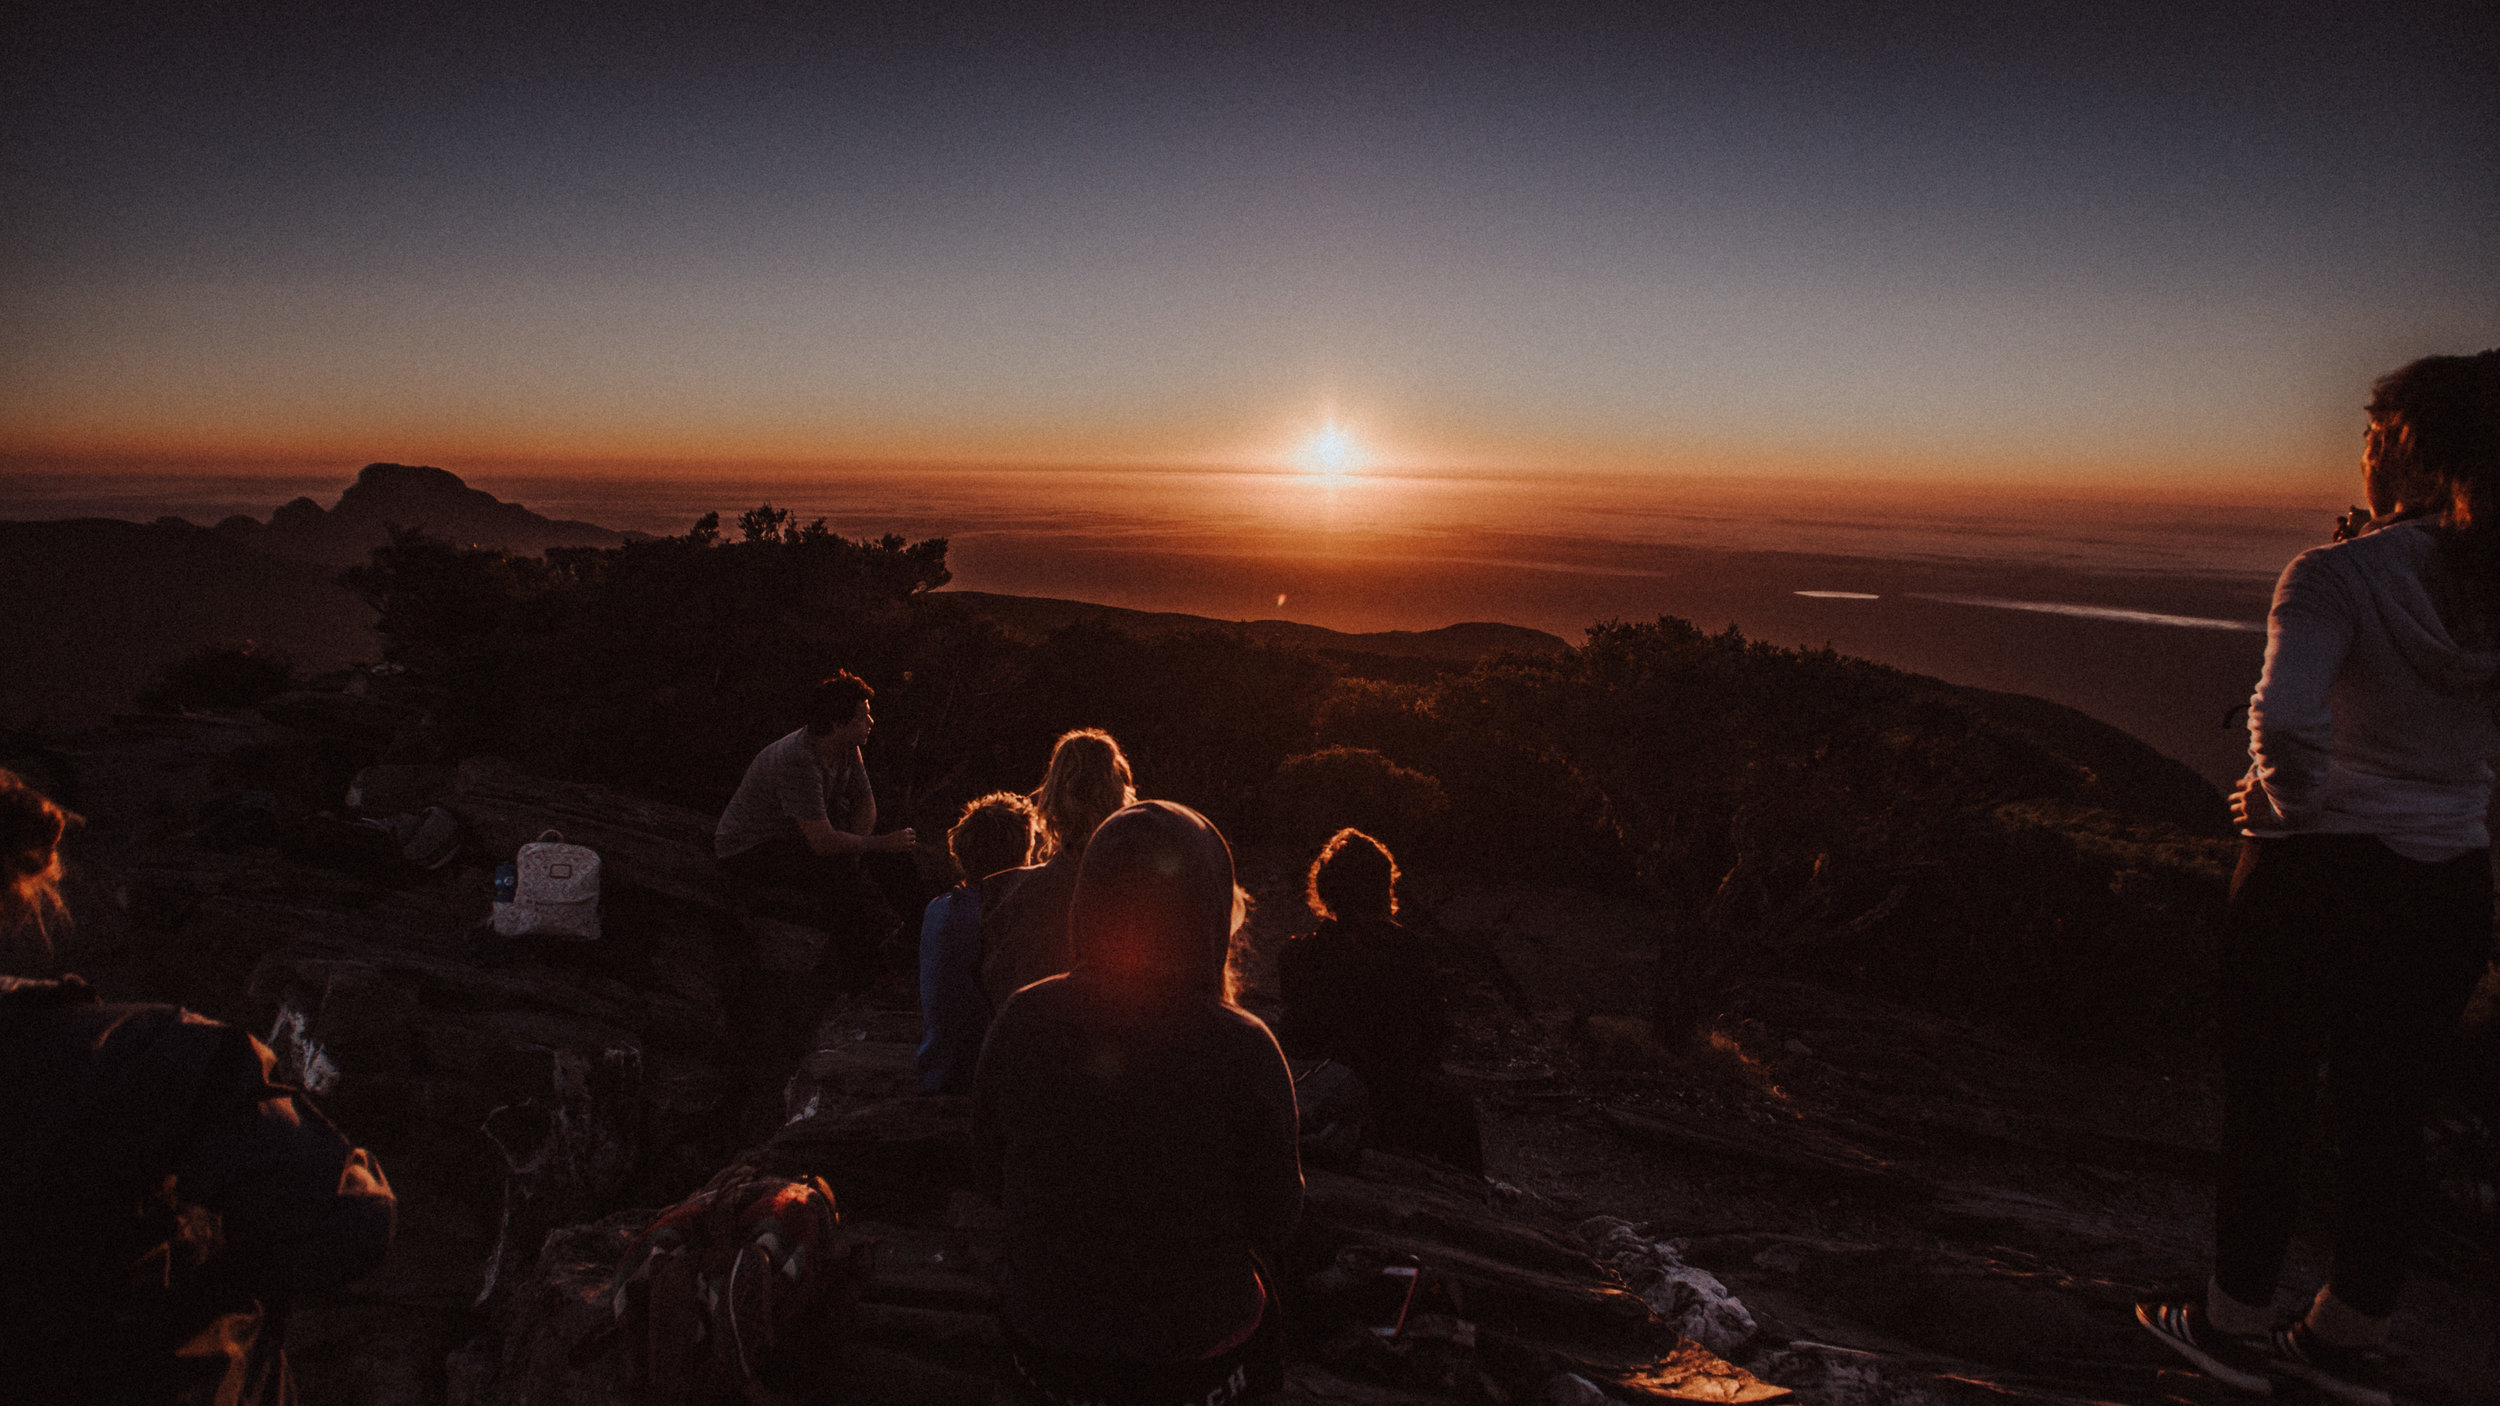 3am hike up Bluff Knoll on the last but-one day of the trip, for sunrise. So worth it.